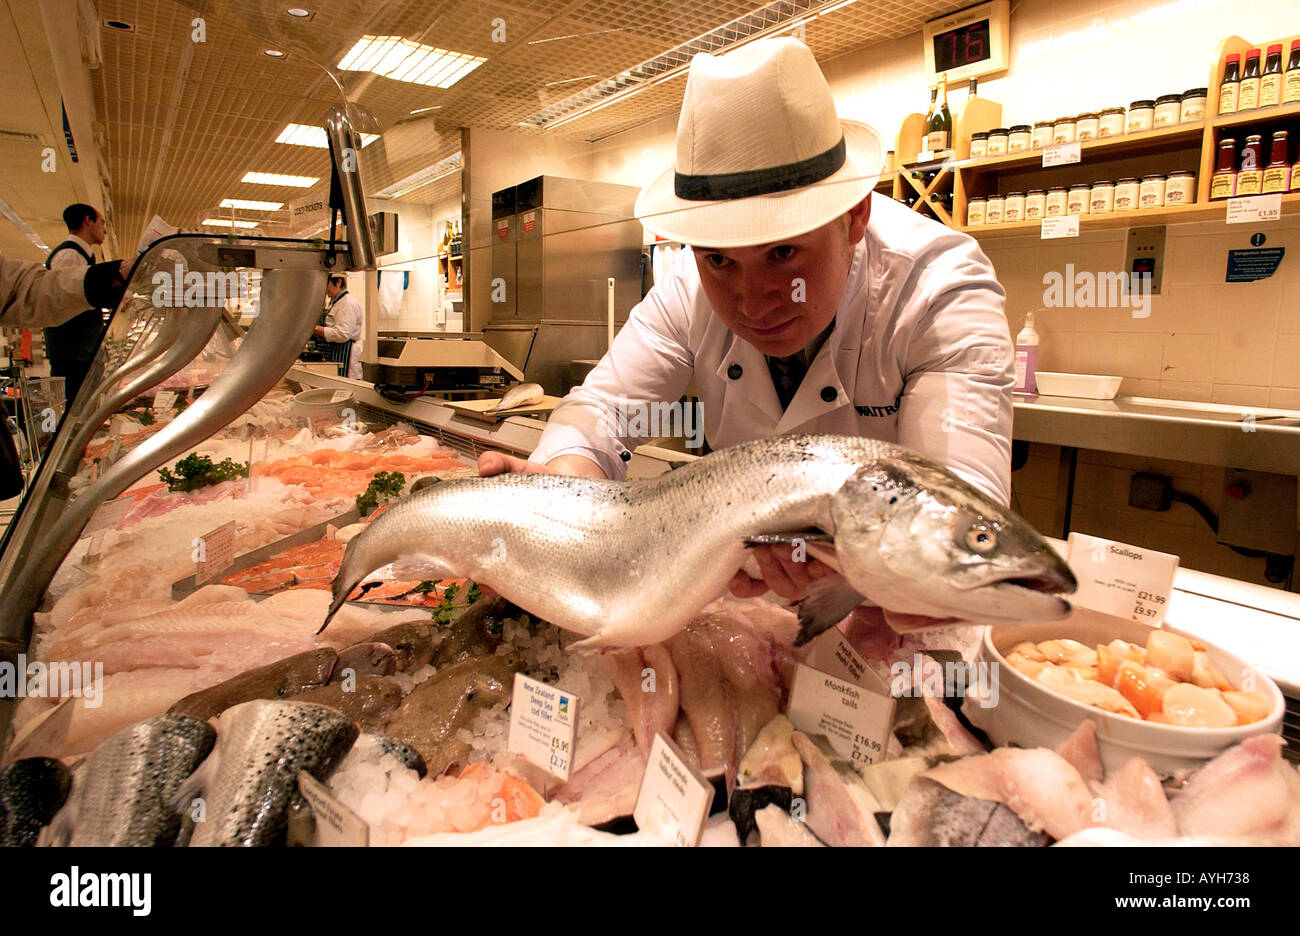 A fishmonger in uniform and hat displays a fish at Waitrose Britains leading quality supermarket - Stock Image